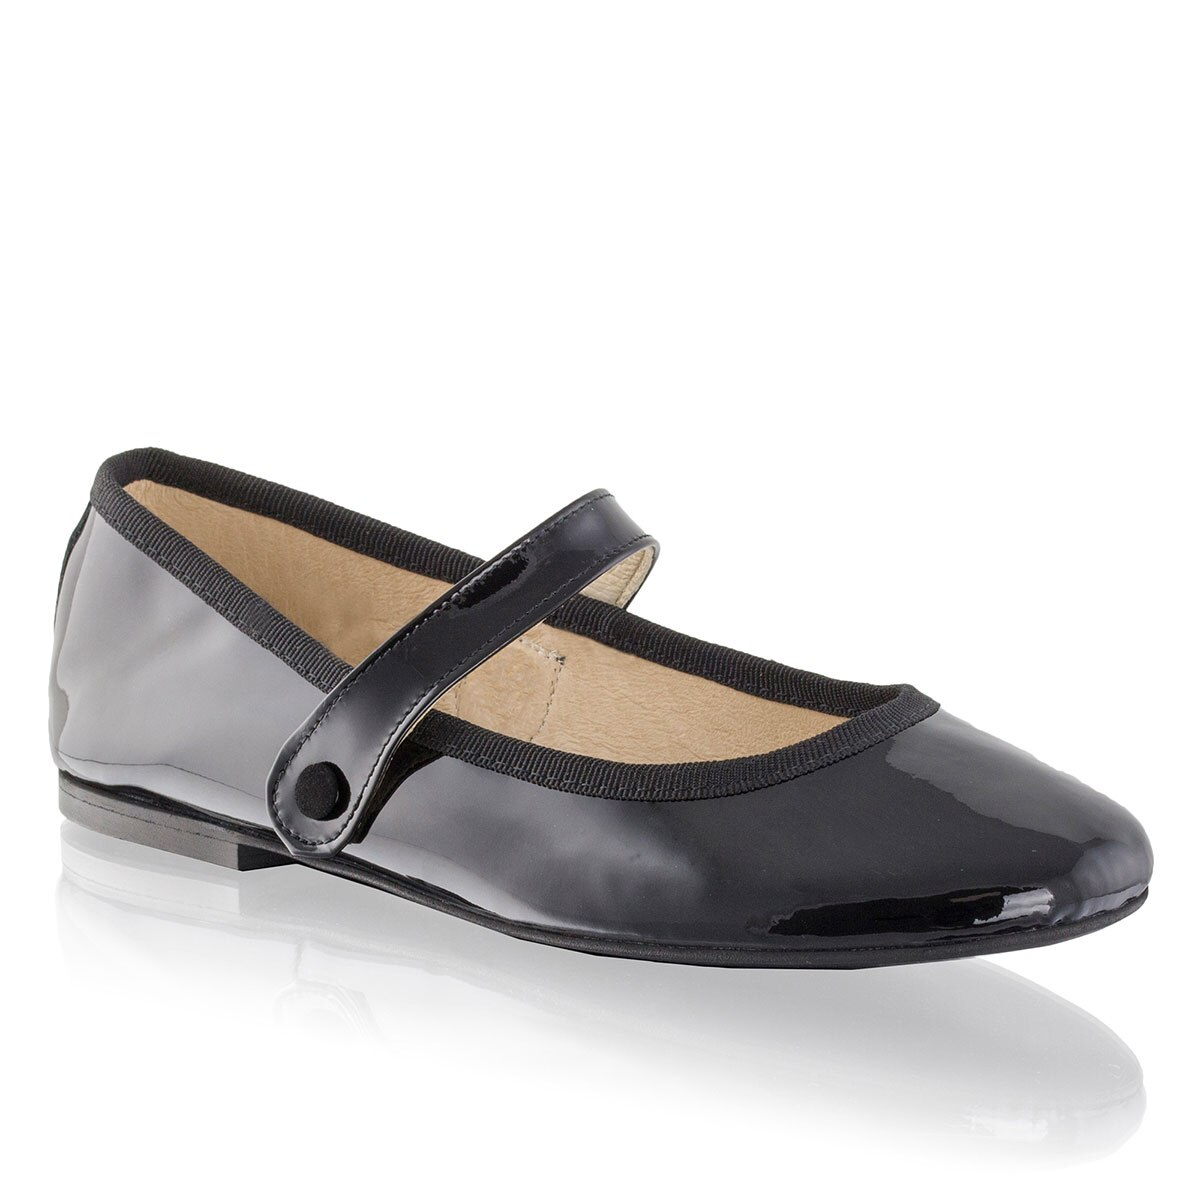 Russell and Bromley MILLIE Mary-Jane Ballerina